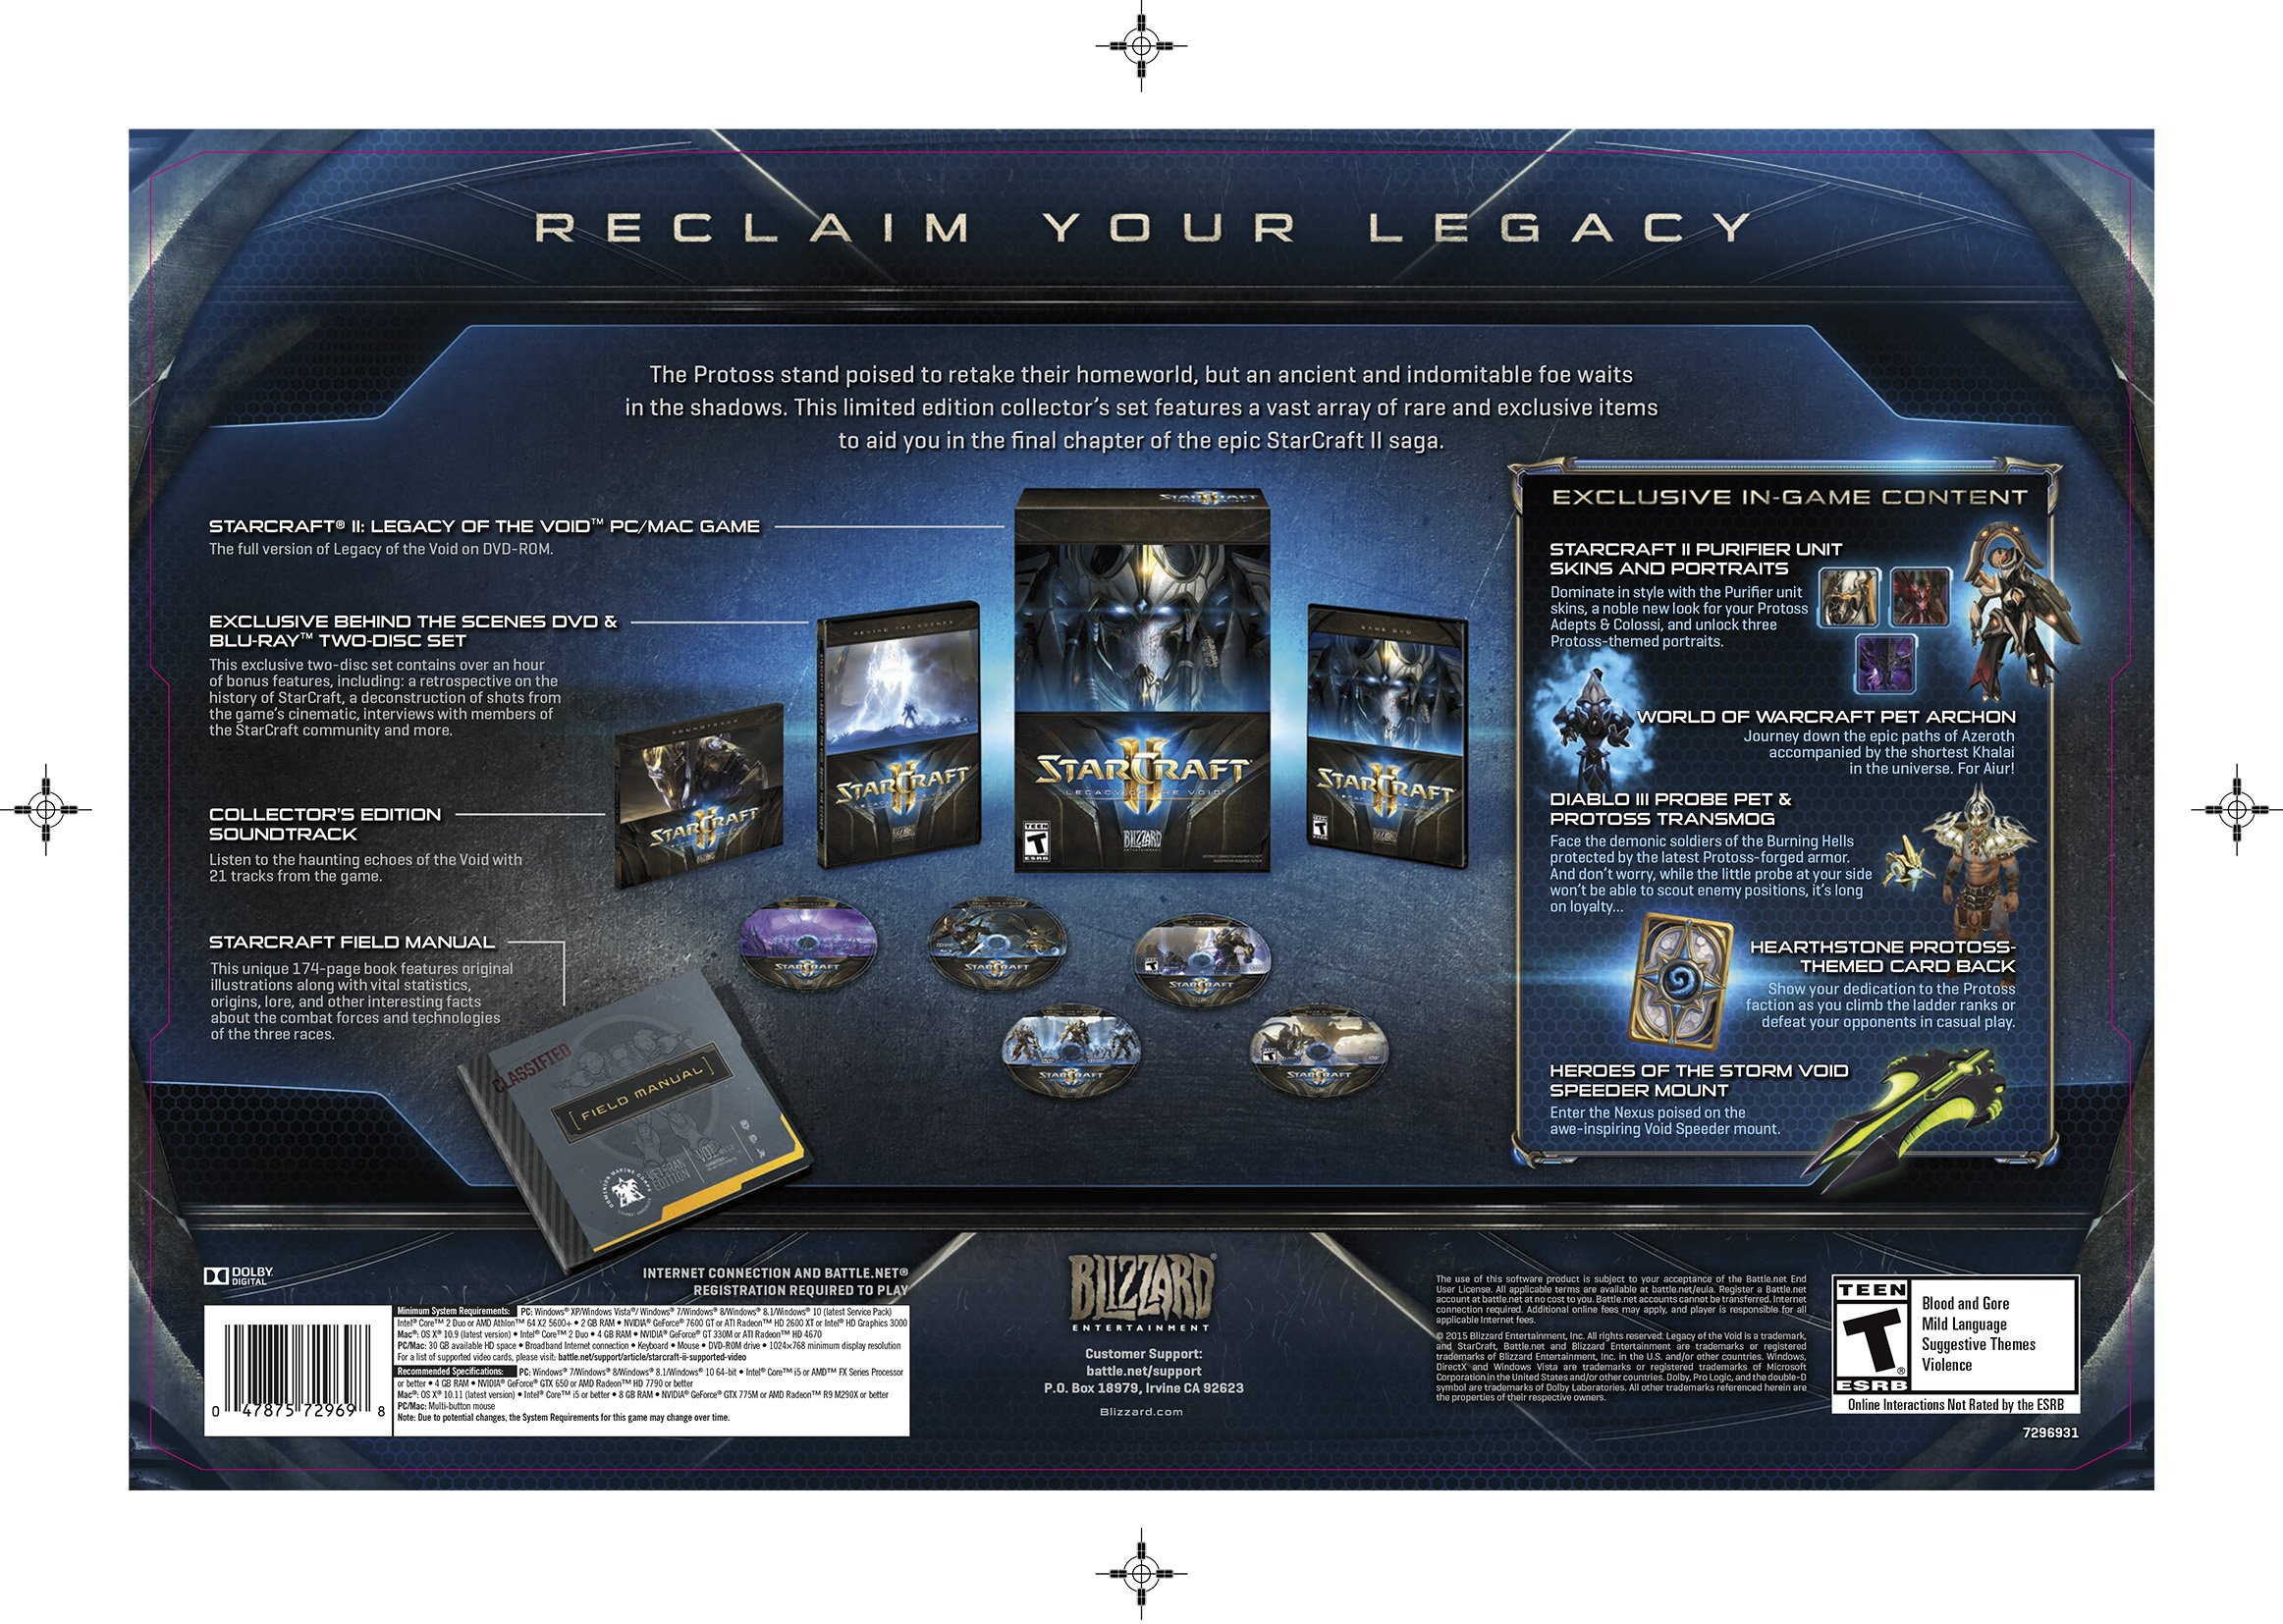 Starcraft II: Legacy of the Void - Collector's Edition by Blizzard Entertainment